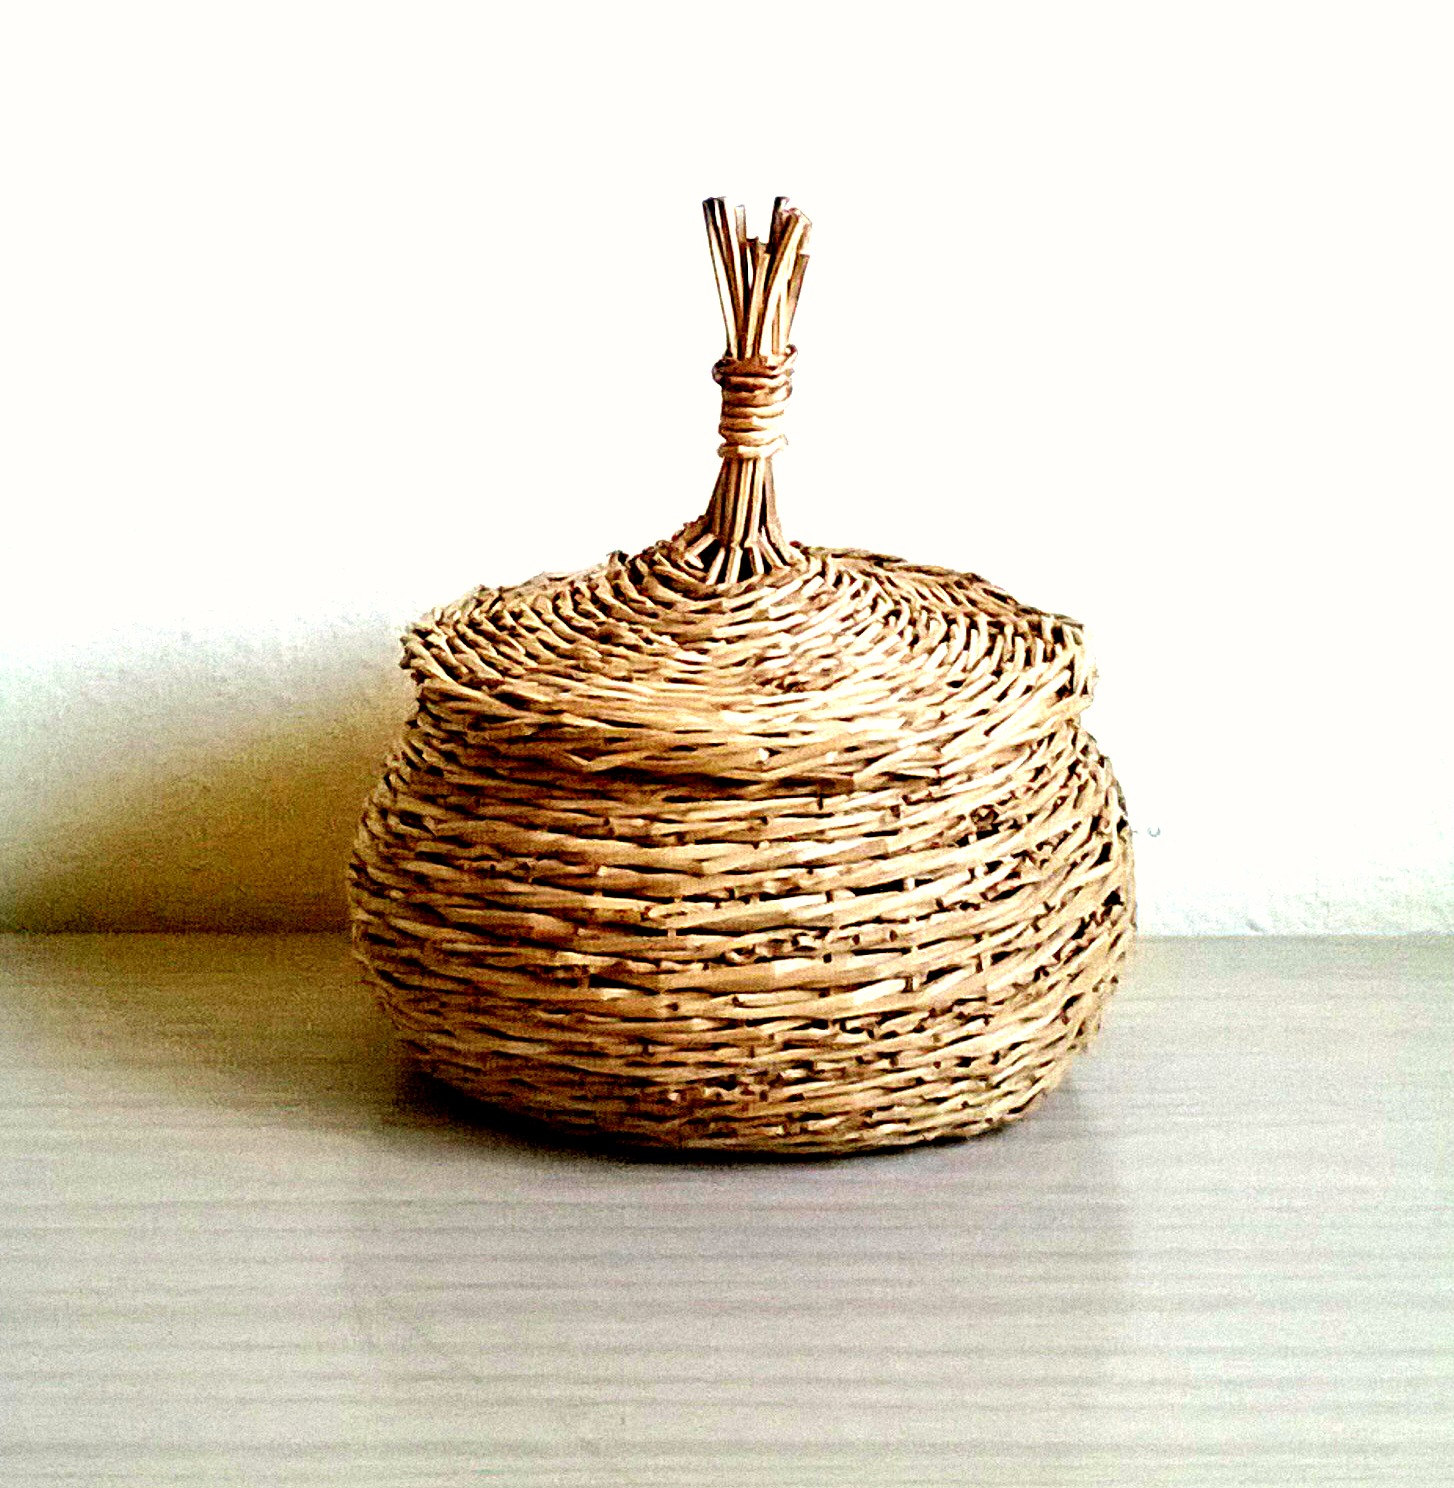 How To Hand Weave A Basket : Daily hunt hunting handmade